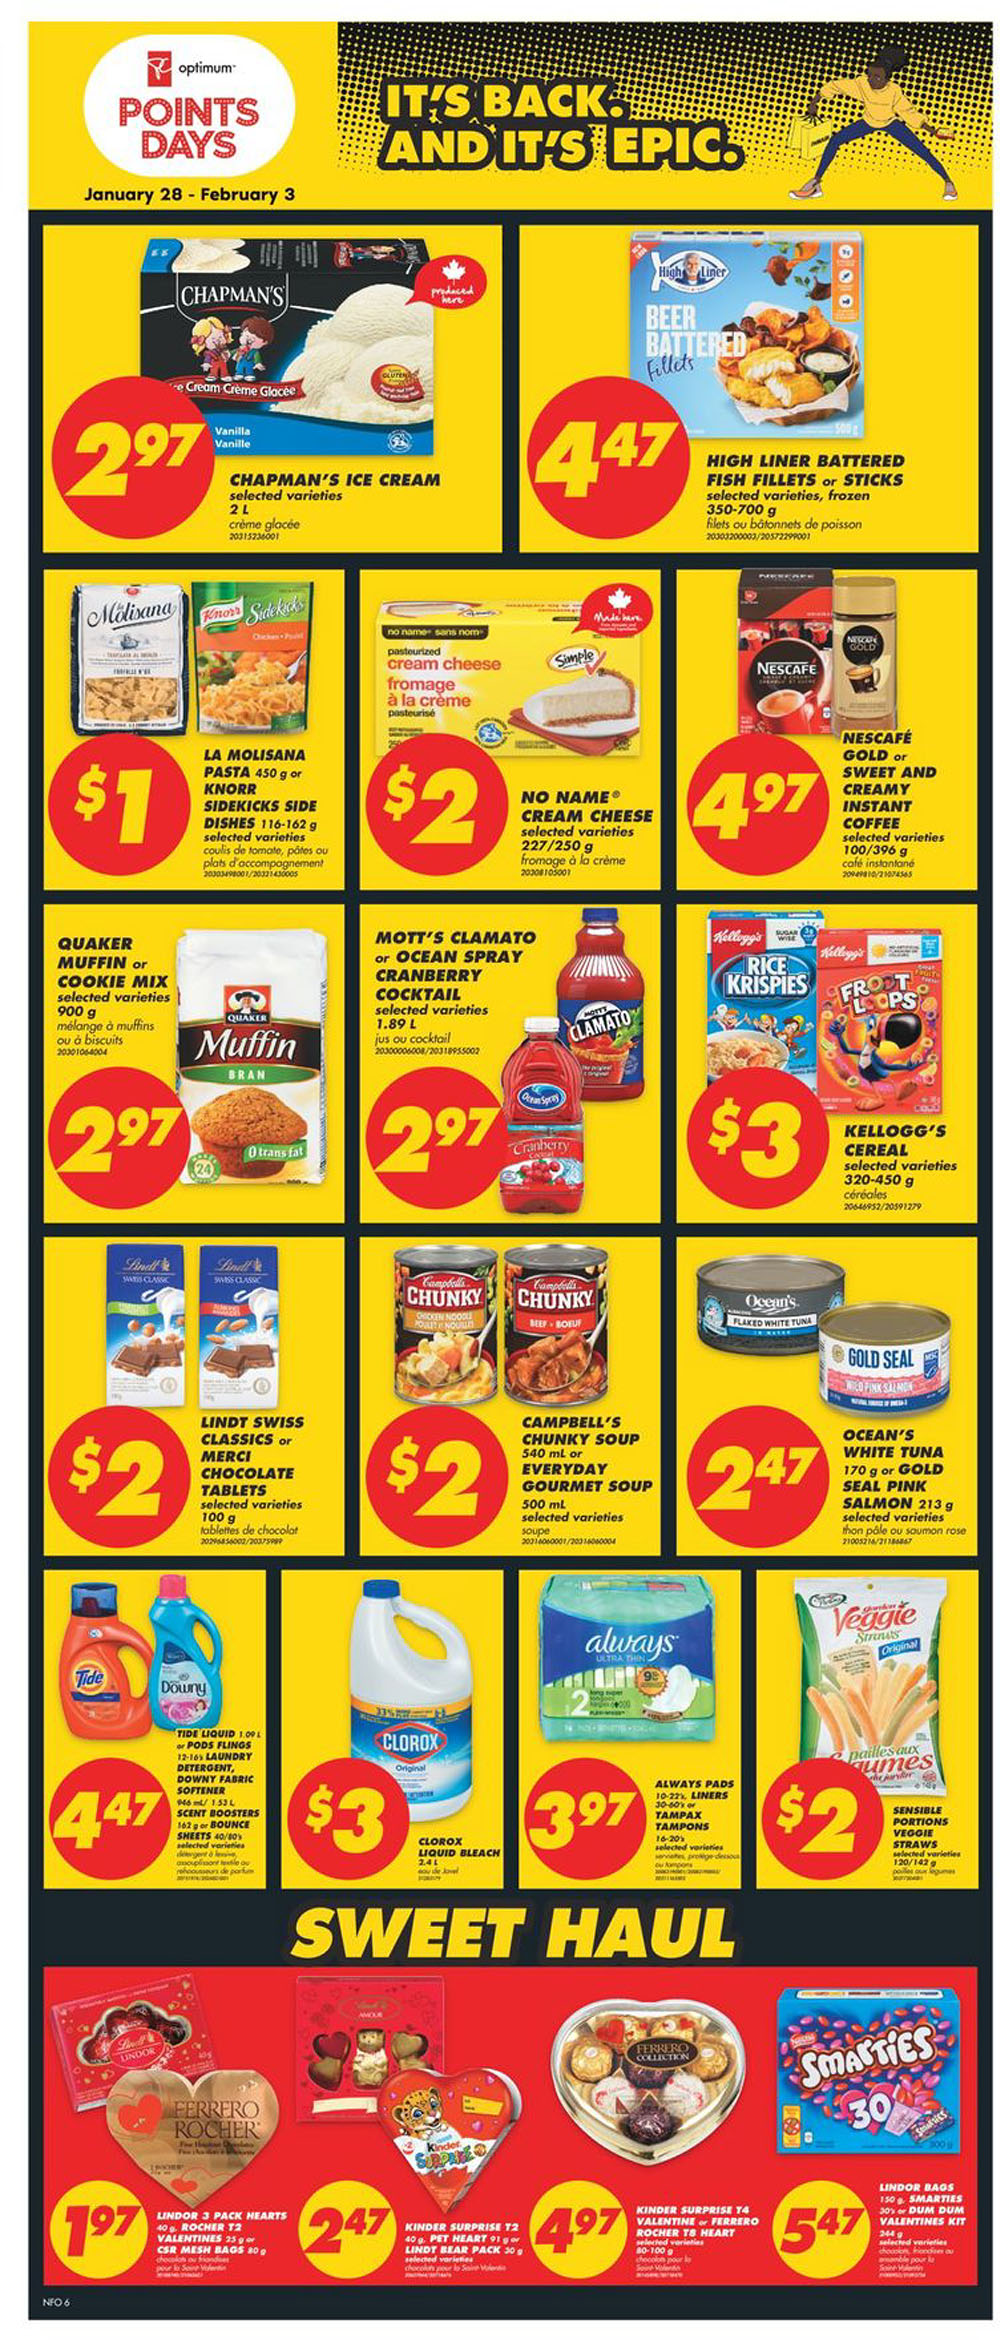 No Frills - Weekly Flyer Specials - Page 9